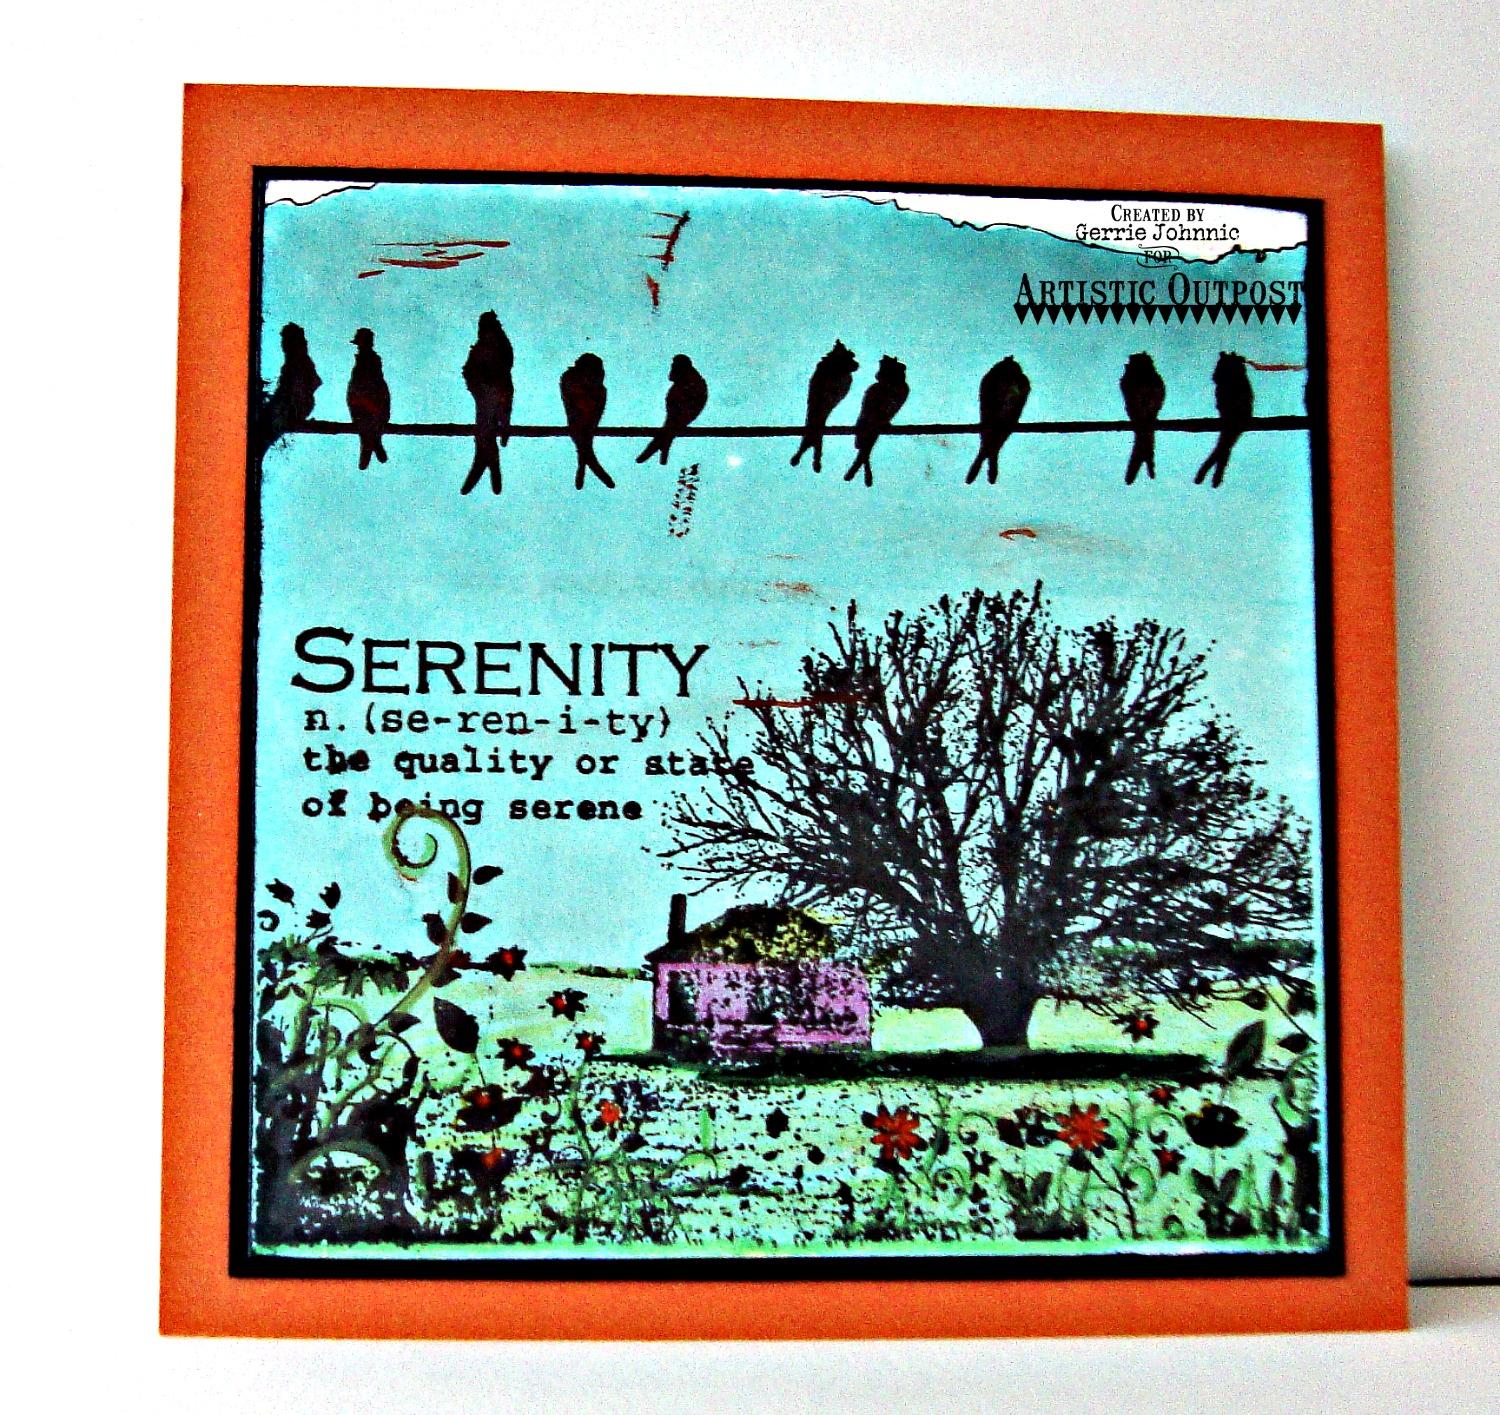 Stamps - Artistic Outpost Serenity, Bluebird